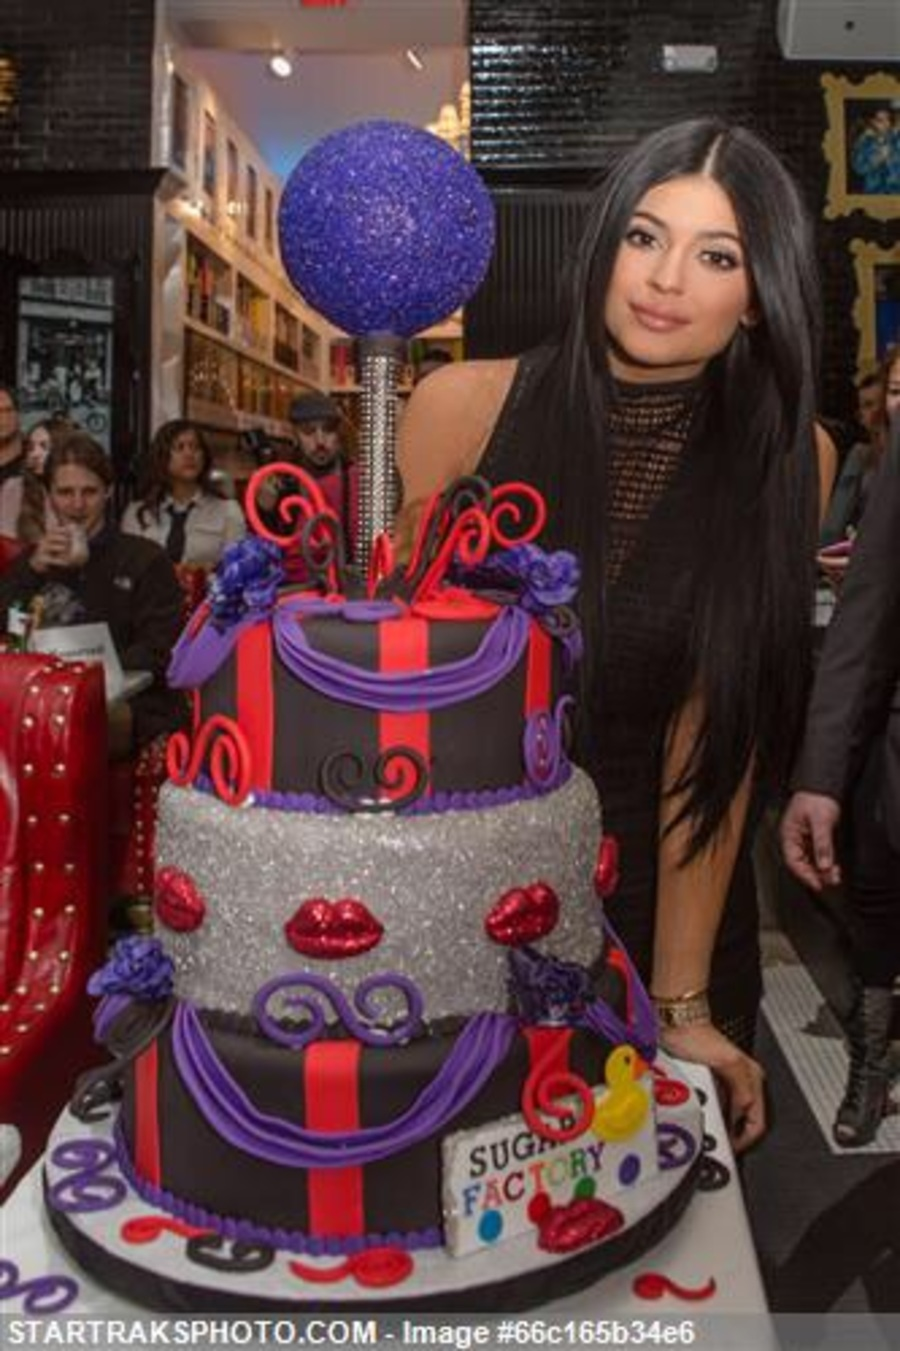 Cake I Did For Kylie Jenner At The Sugar Factory Rosemont Grand